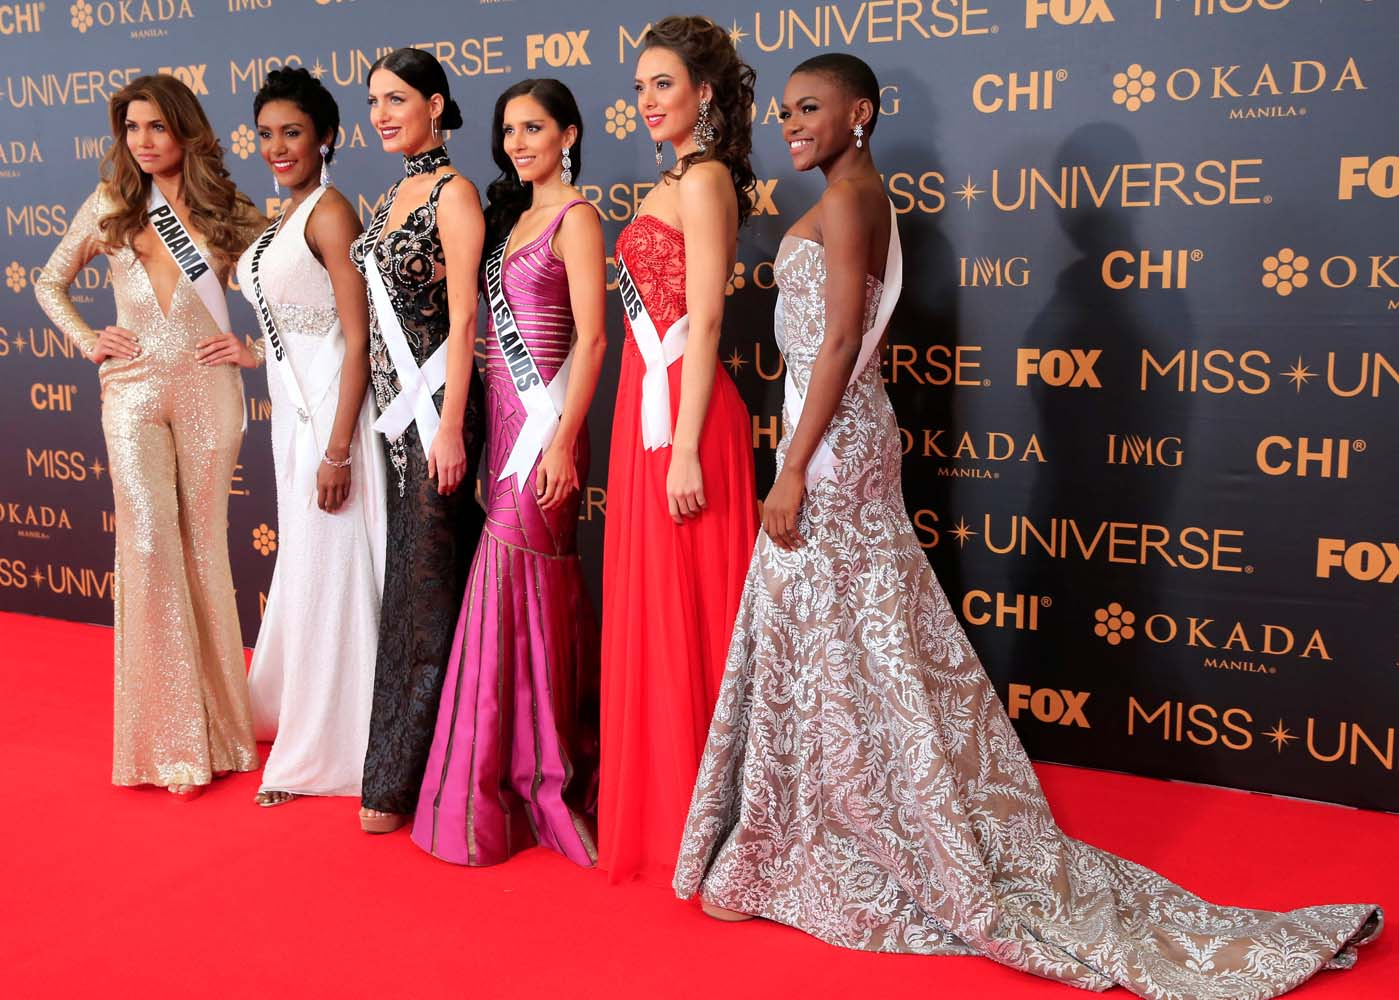 Miss Universe candidates pose for a picture during a red carpet inside a SMX convention in metro Manila, Philippines January 29, 2017. In Photo from L-R: Miss Panama Keity Drennan, Miss Cayman Islands Monyque Brooks, Miss Georgia Nuka Karalashvili, Miss U.S. Virgin Islands Carolyn Carter, Miss Netherlands Zoey Ivory and Miss Sierra Leone Hawa Kamara. REUTERS/Romeo Ranoco